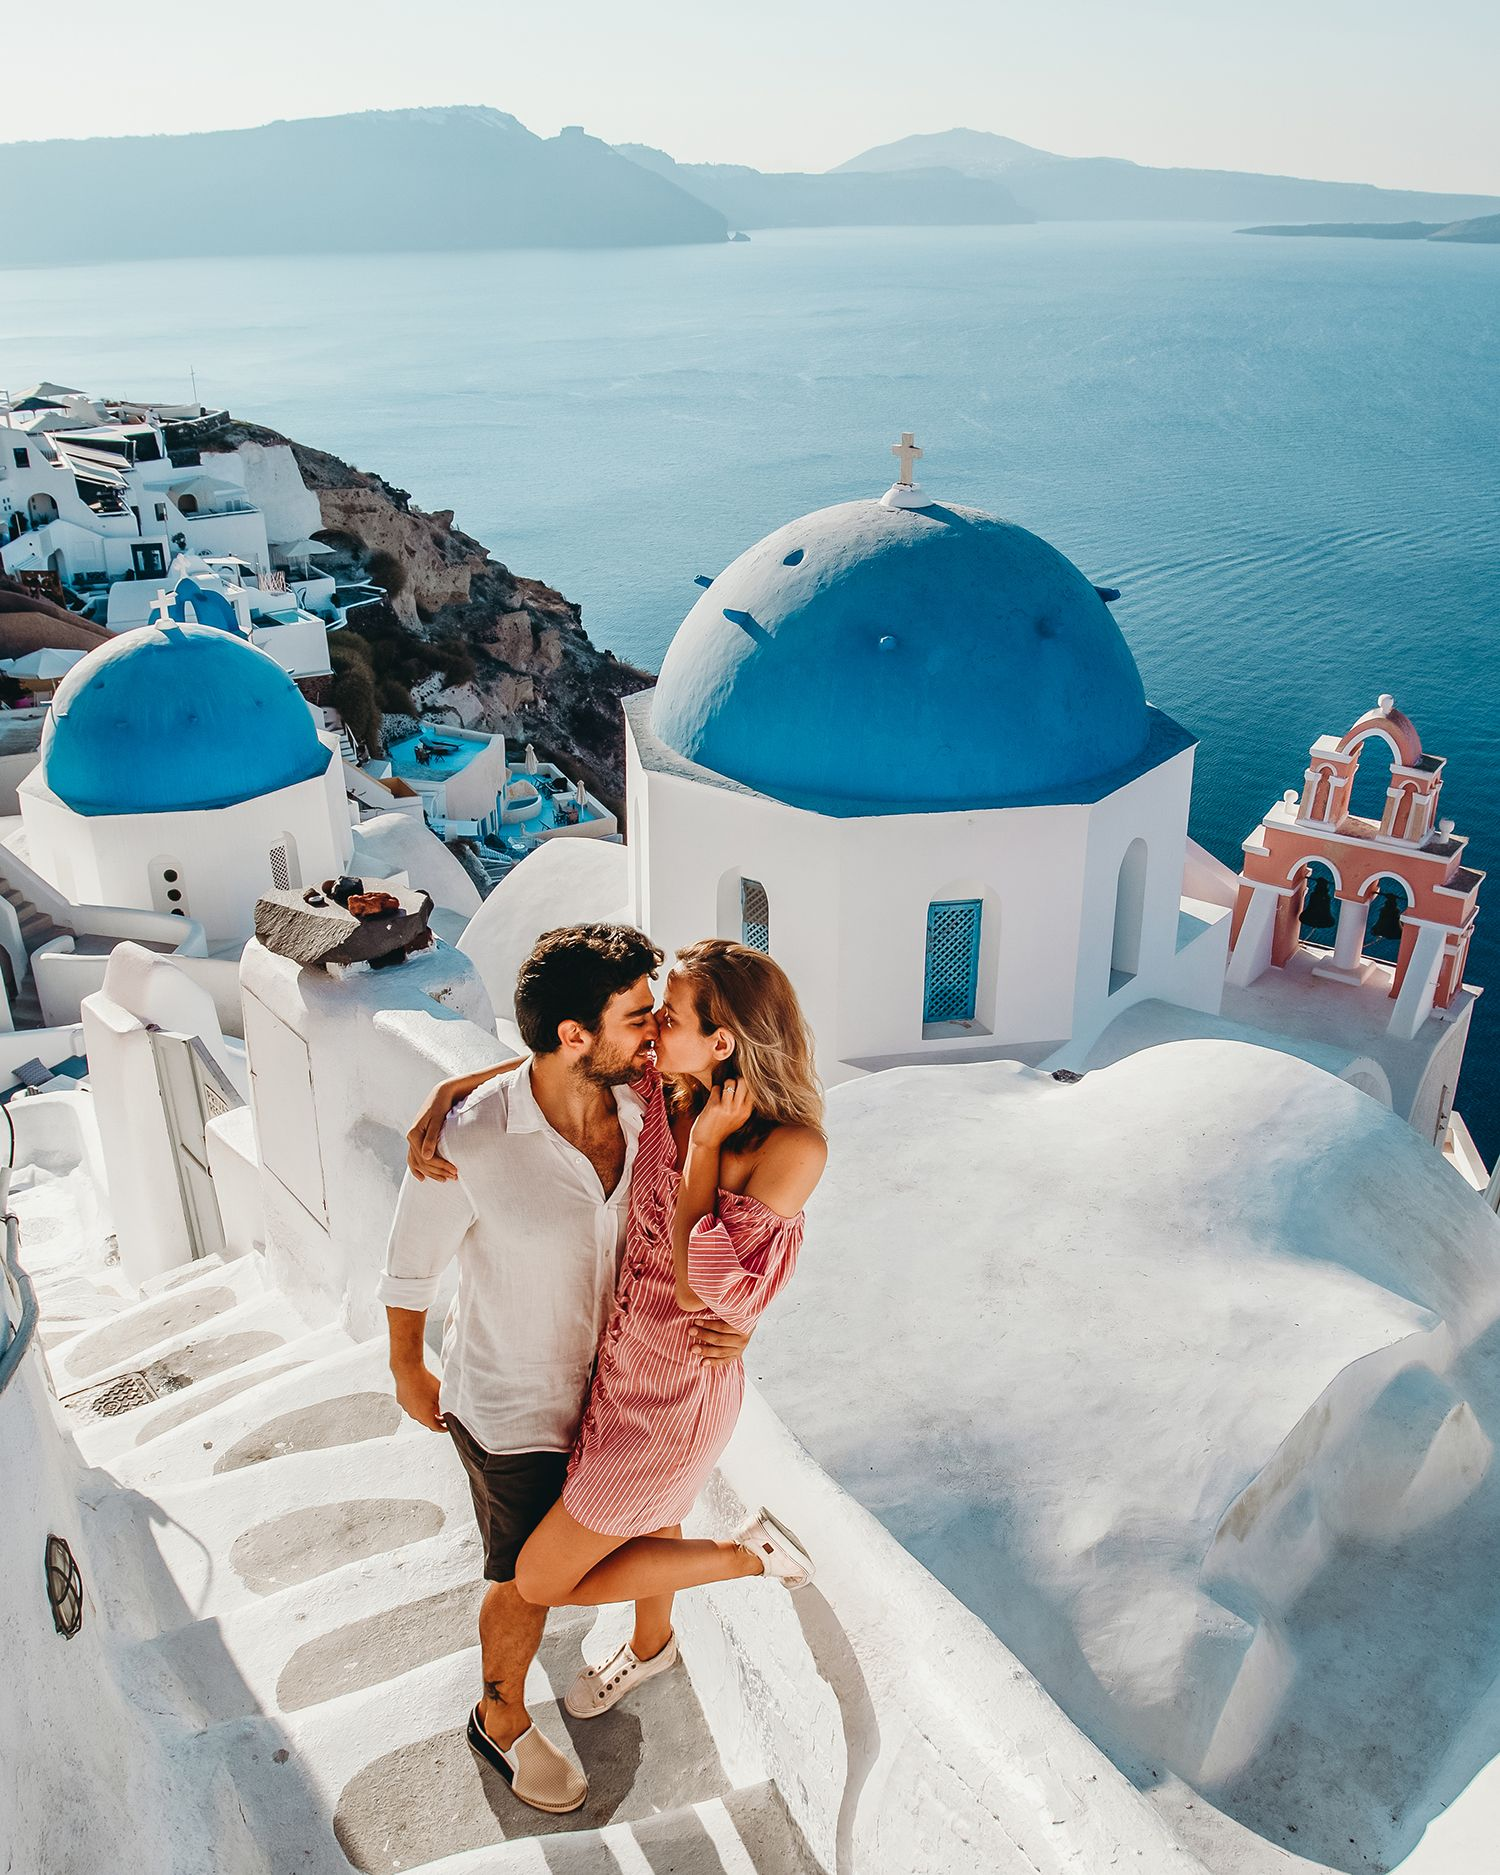 What We Loved And Hated About Santorini Santorini Travel Greece Honeymoon Santorini Honeymoon